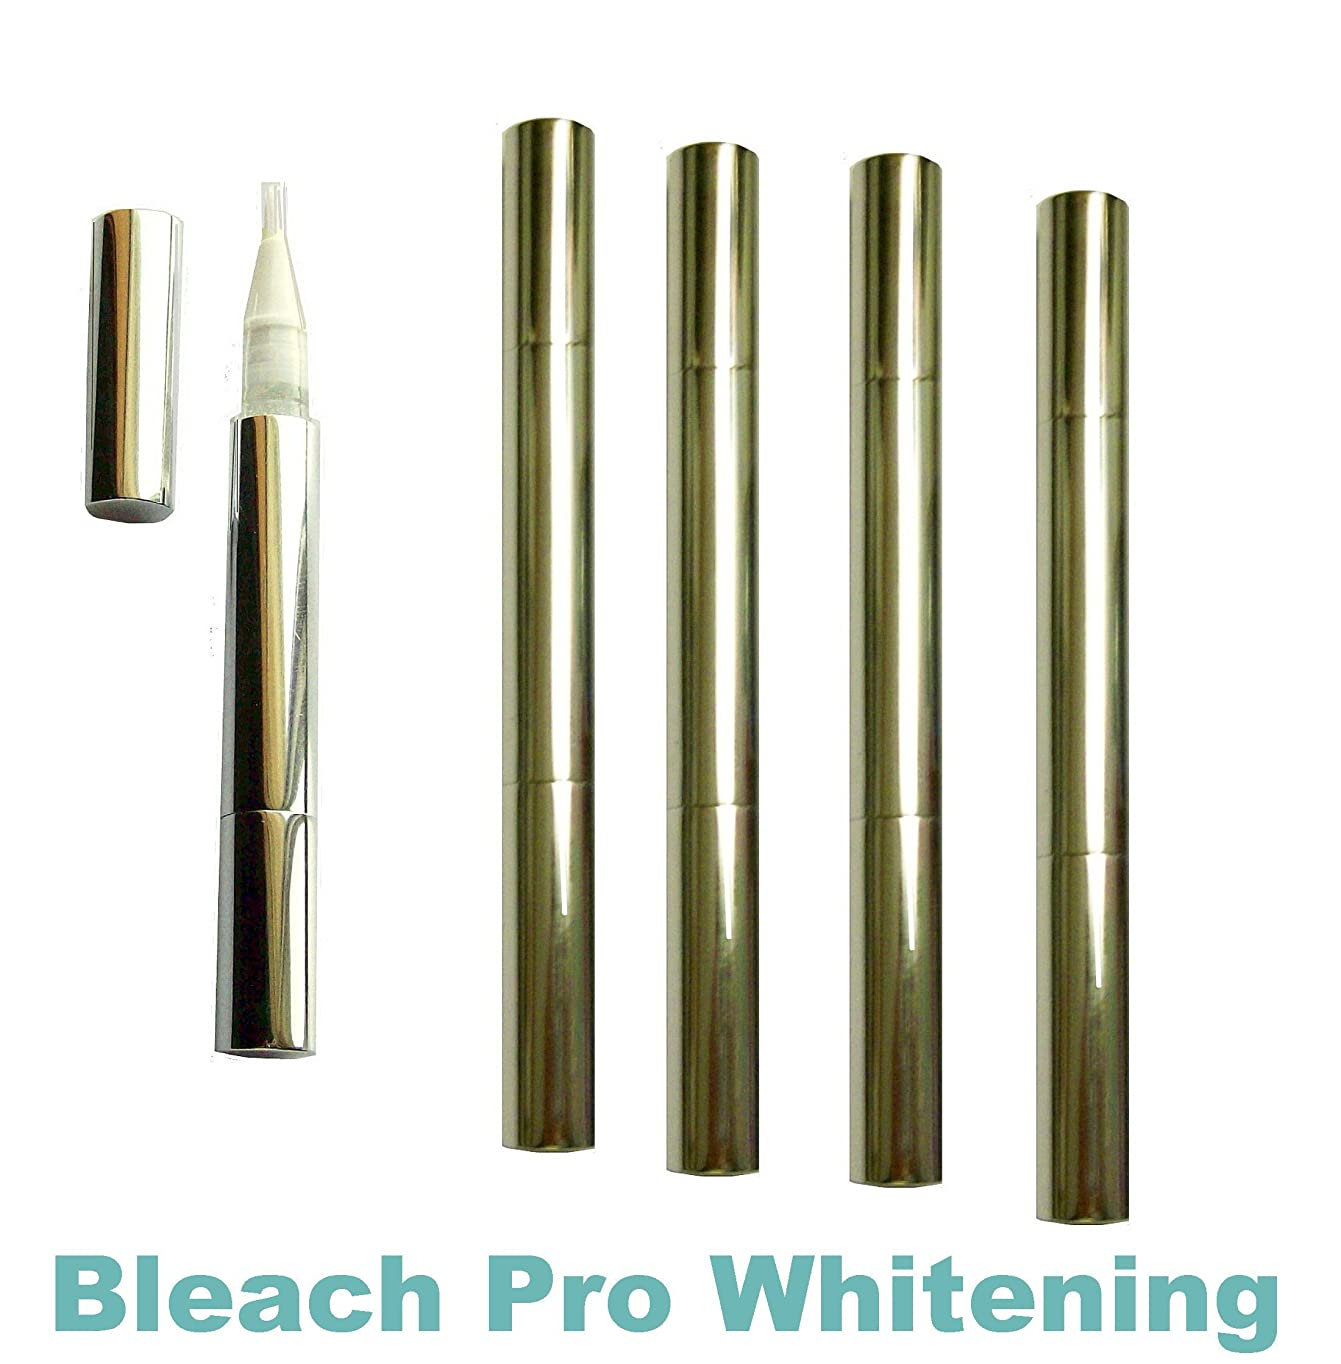 ひどいバンク輸送Teeth Whitening Gel Pens 35% Carbamide Peroxide Tooth Bleaching Formula Pen with Brush Tip Gel Dispenser. 5 Whitening Pens. by Bleach Pro Whitening